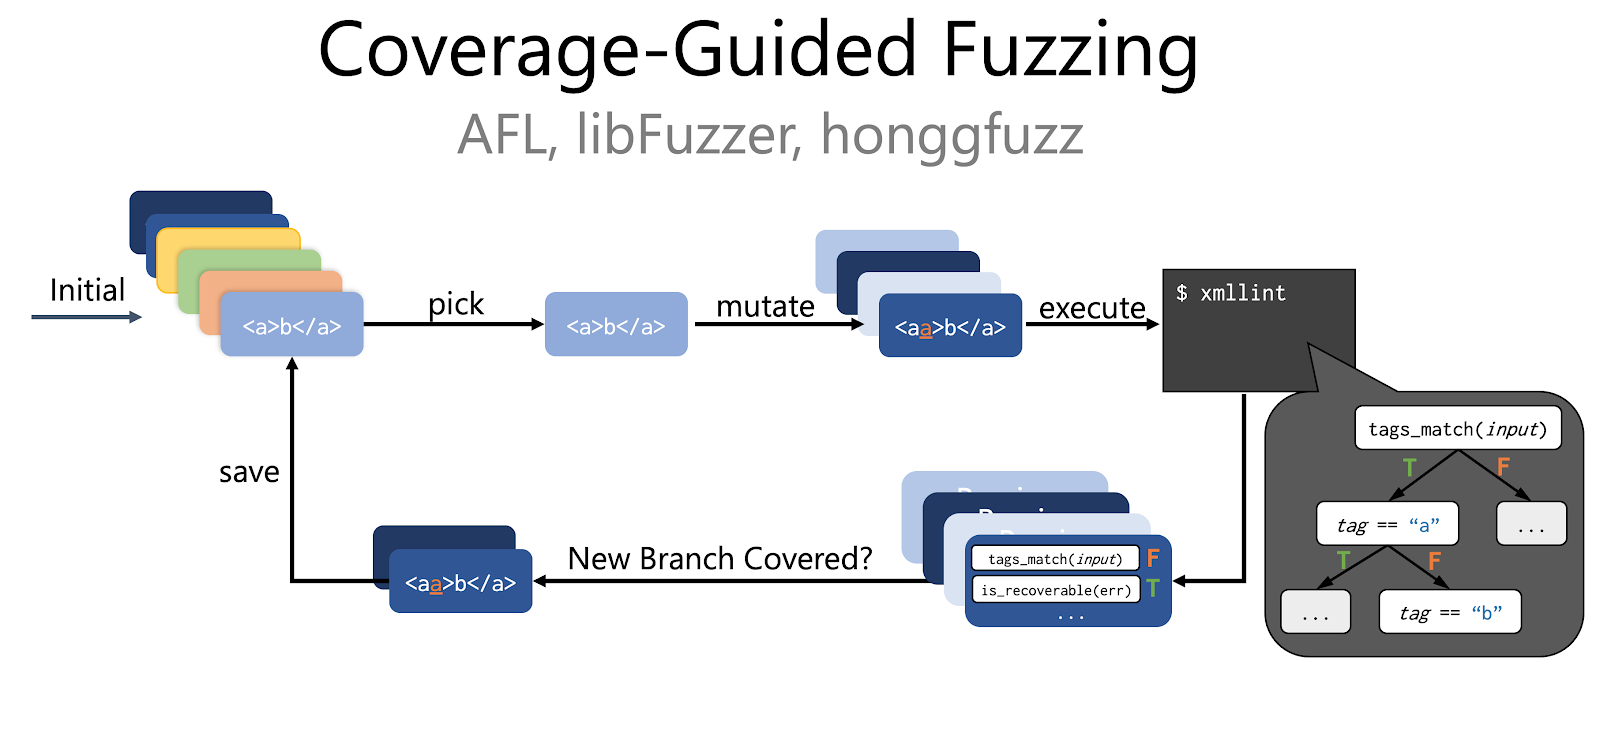 Coverage-Guided Fuzzing